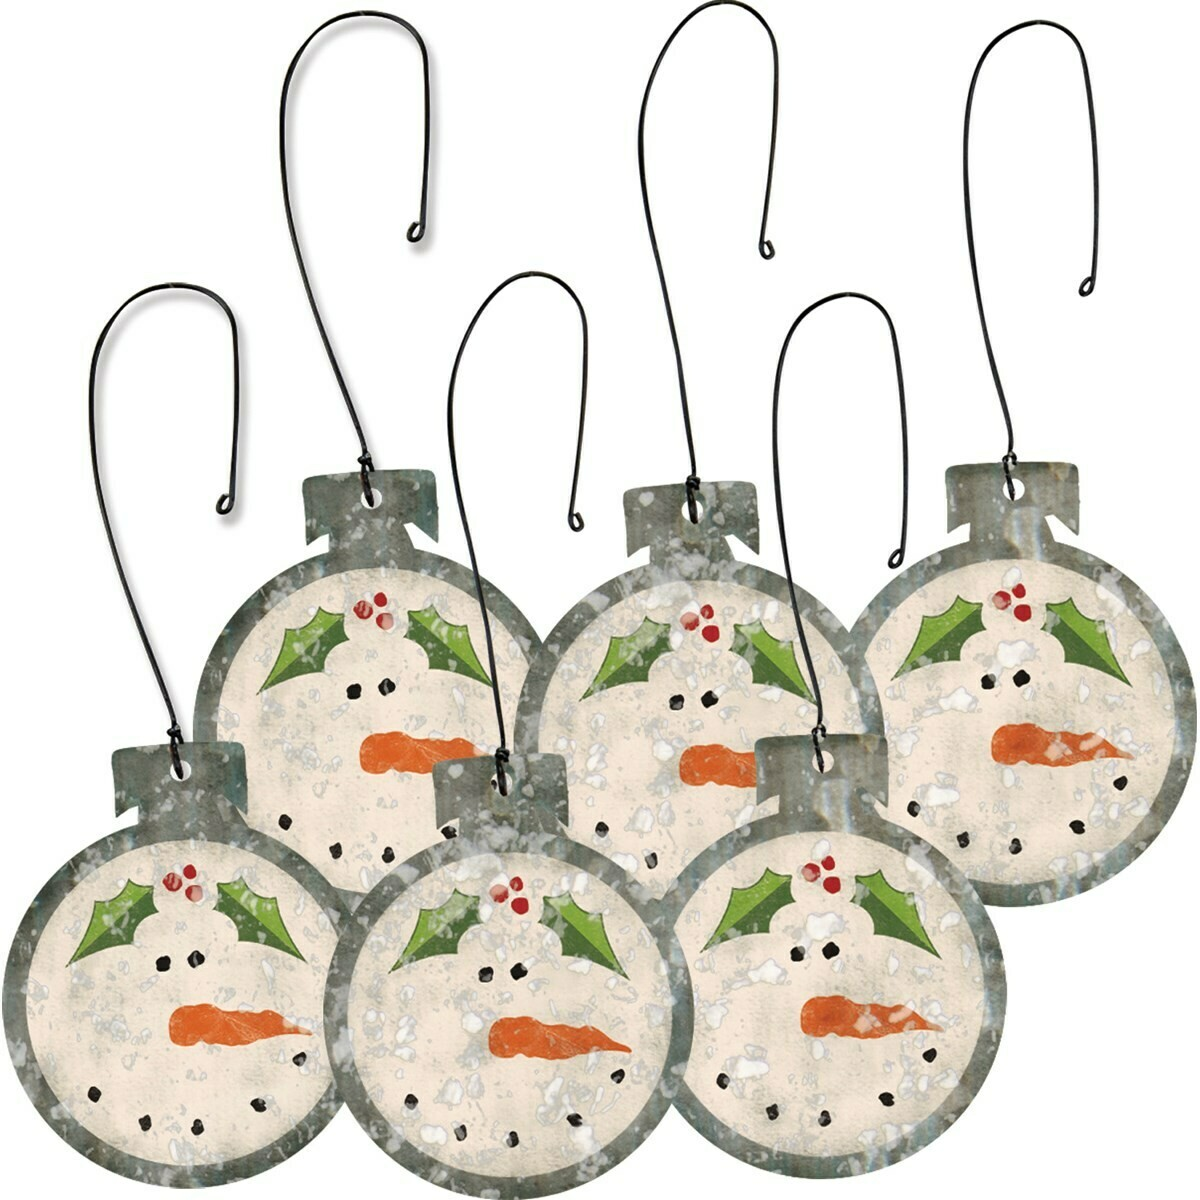 Set of 6 Mini Snowman Ornaments